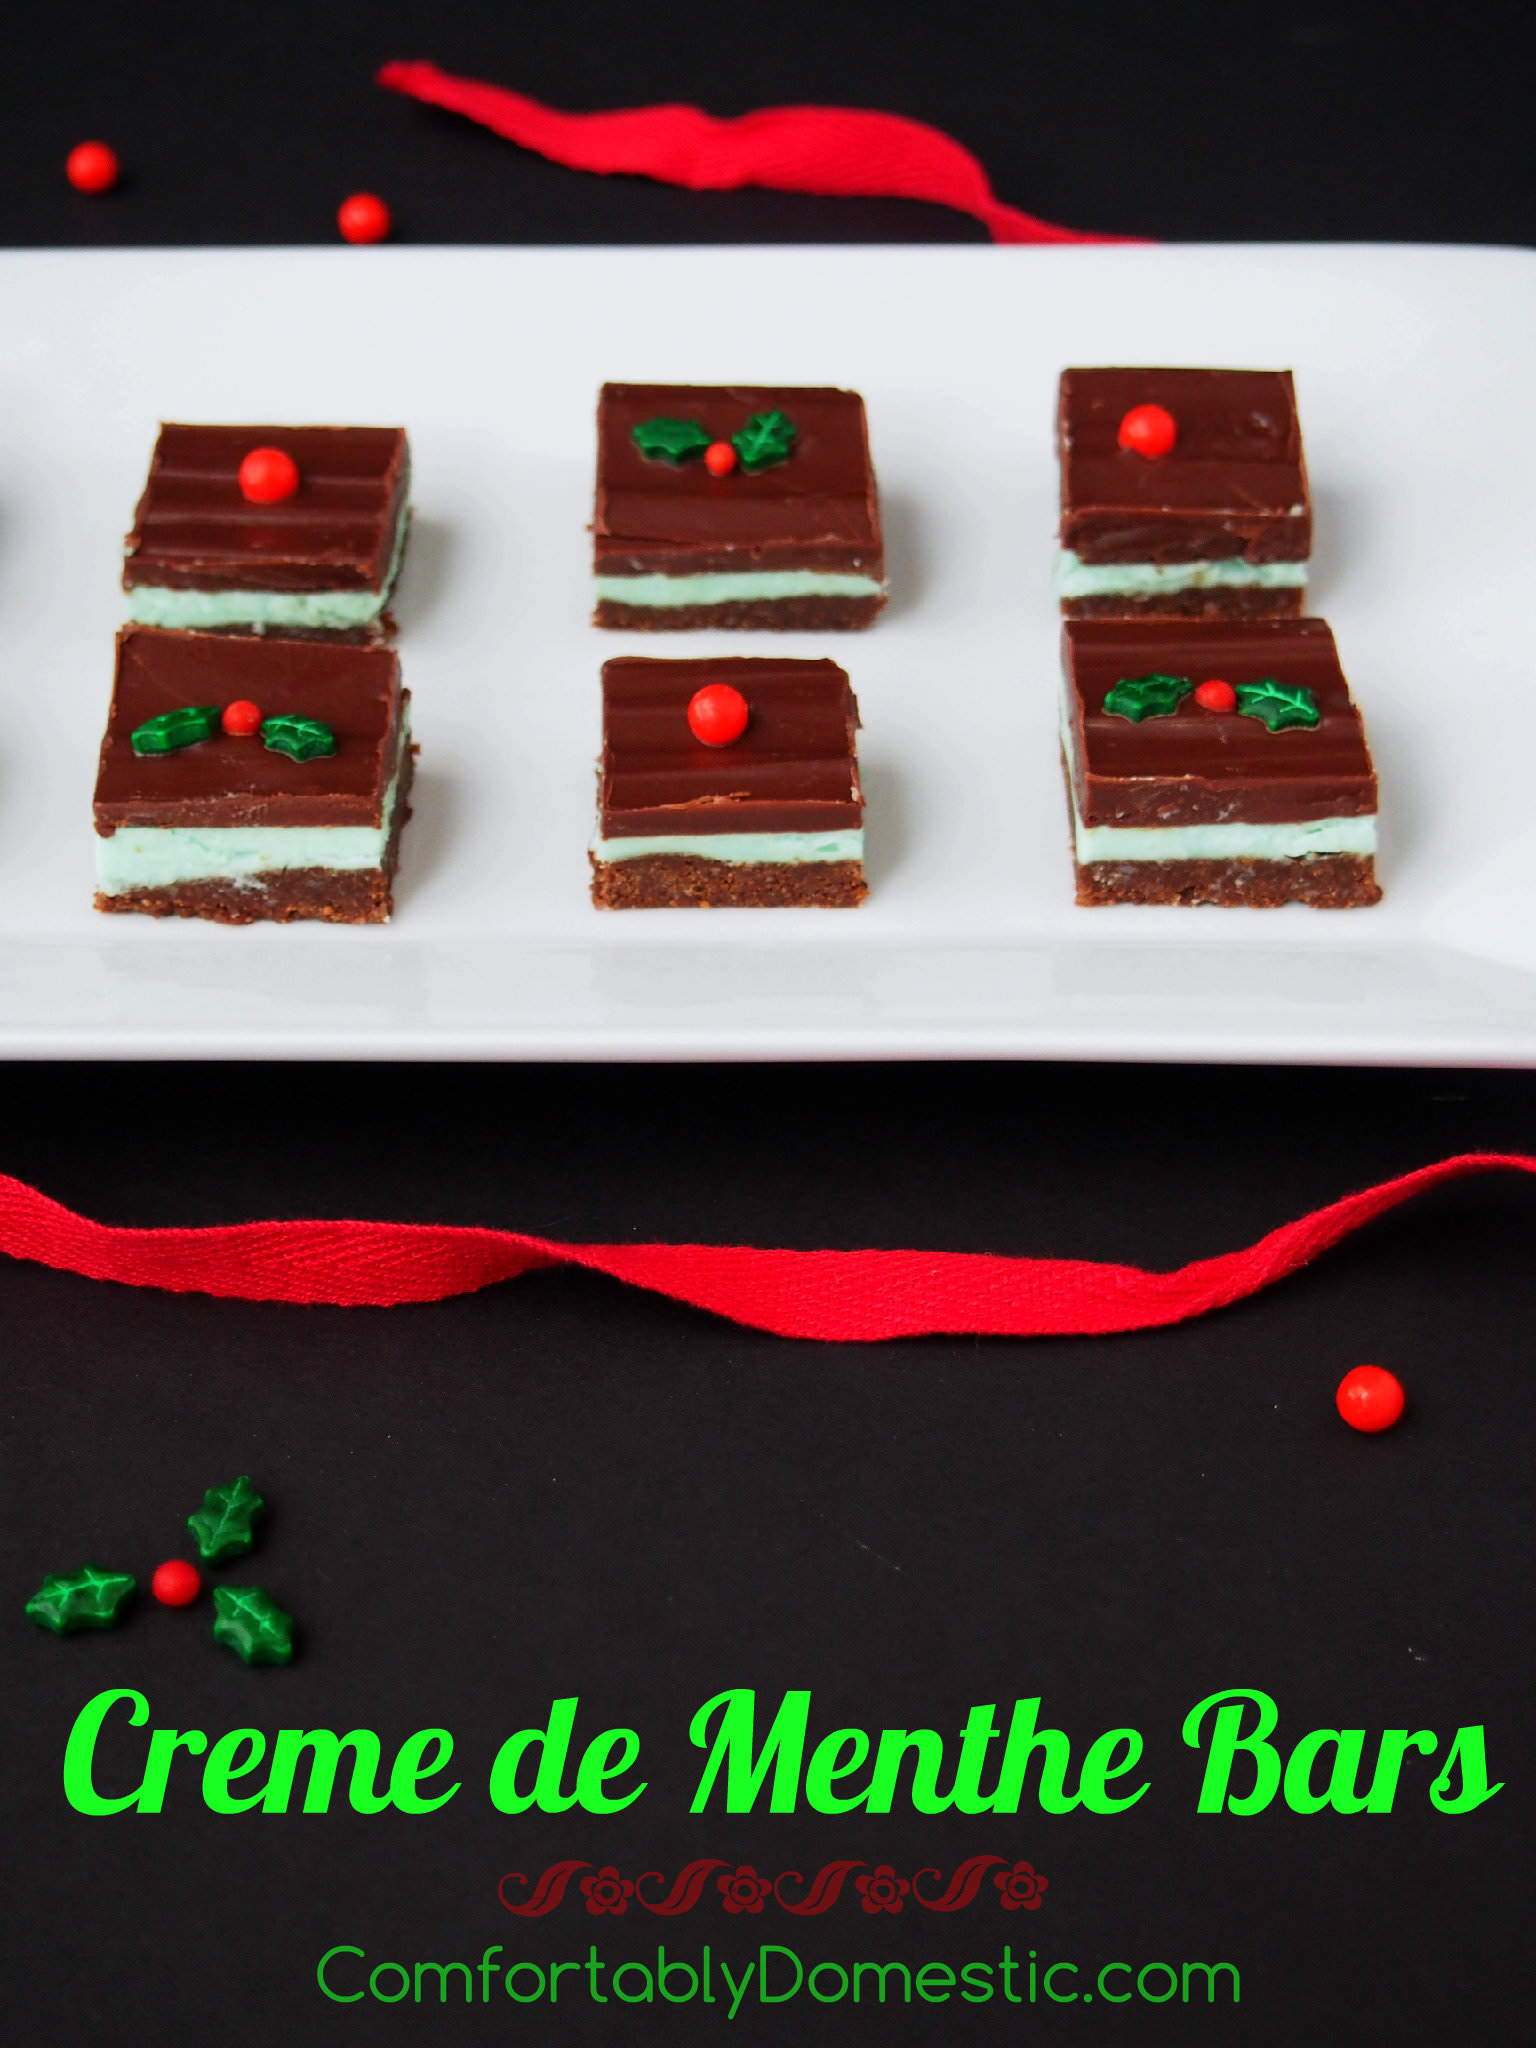 Crème de Menthe bars are a great holiday food gift! Refreshing mint, layered between rich chocolate ganache and a crunchy chocolate graham cracker crust. | ComfortablyDomestic.com